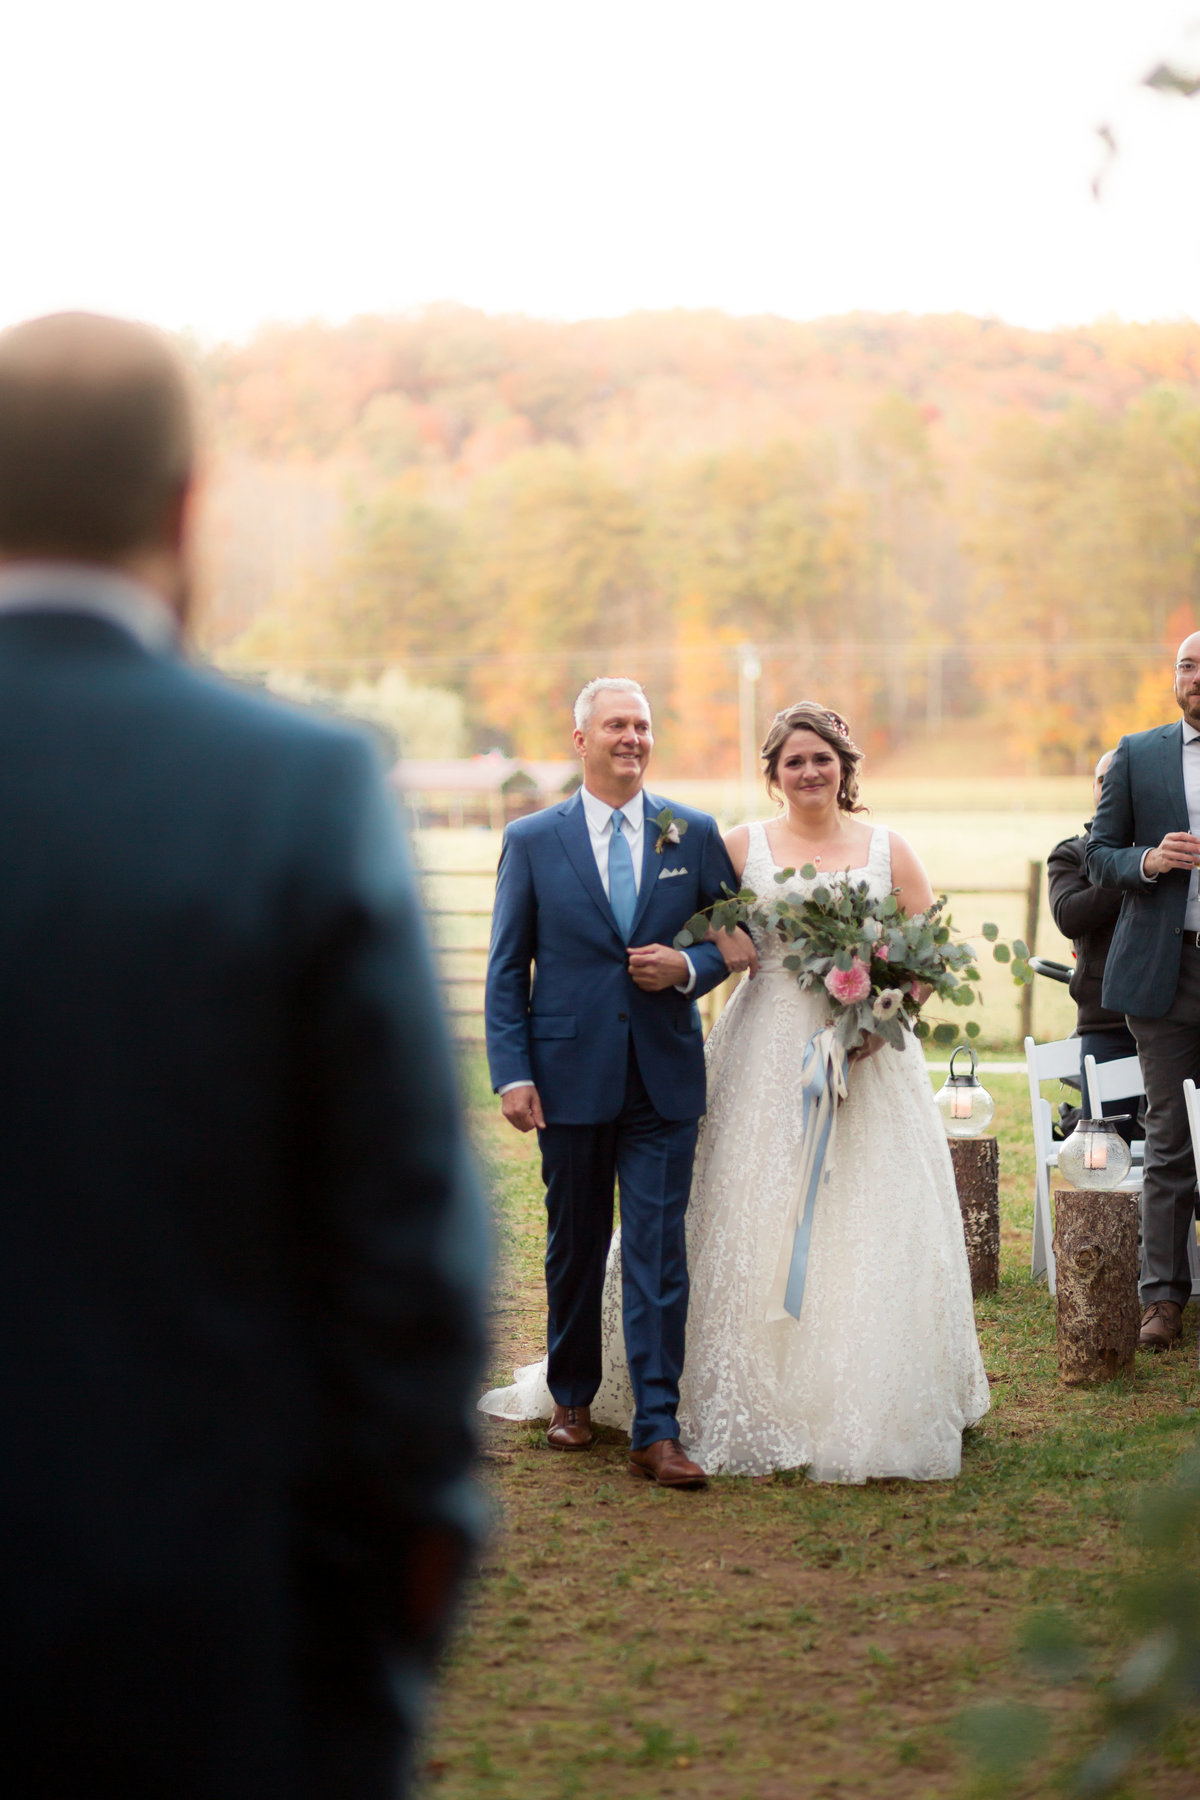 photo of dad walking his bride daughter down the aisle to groom